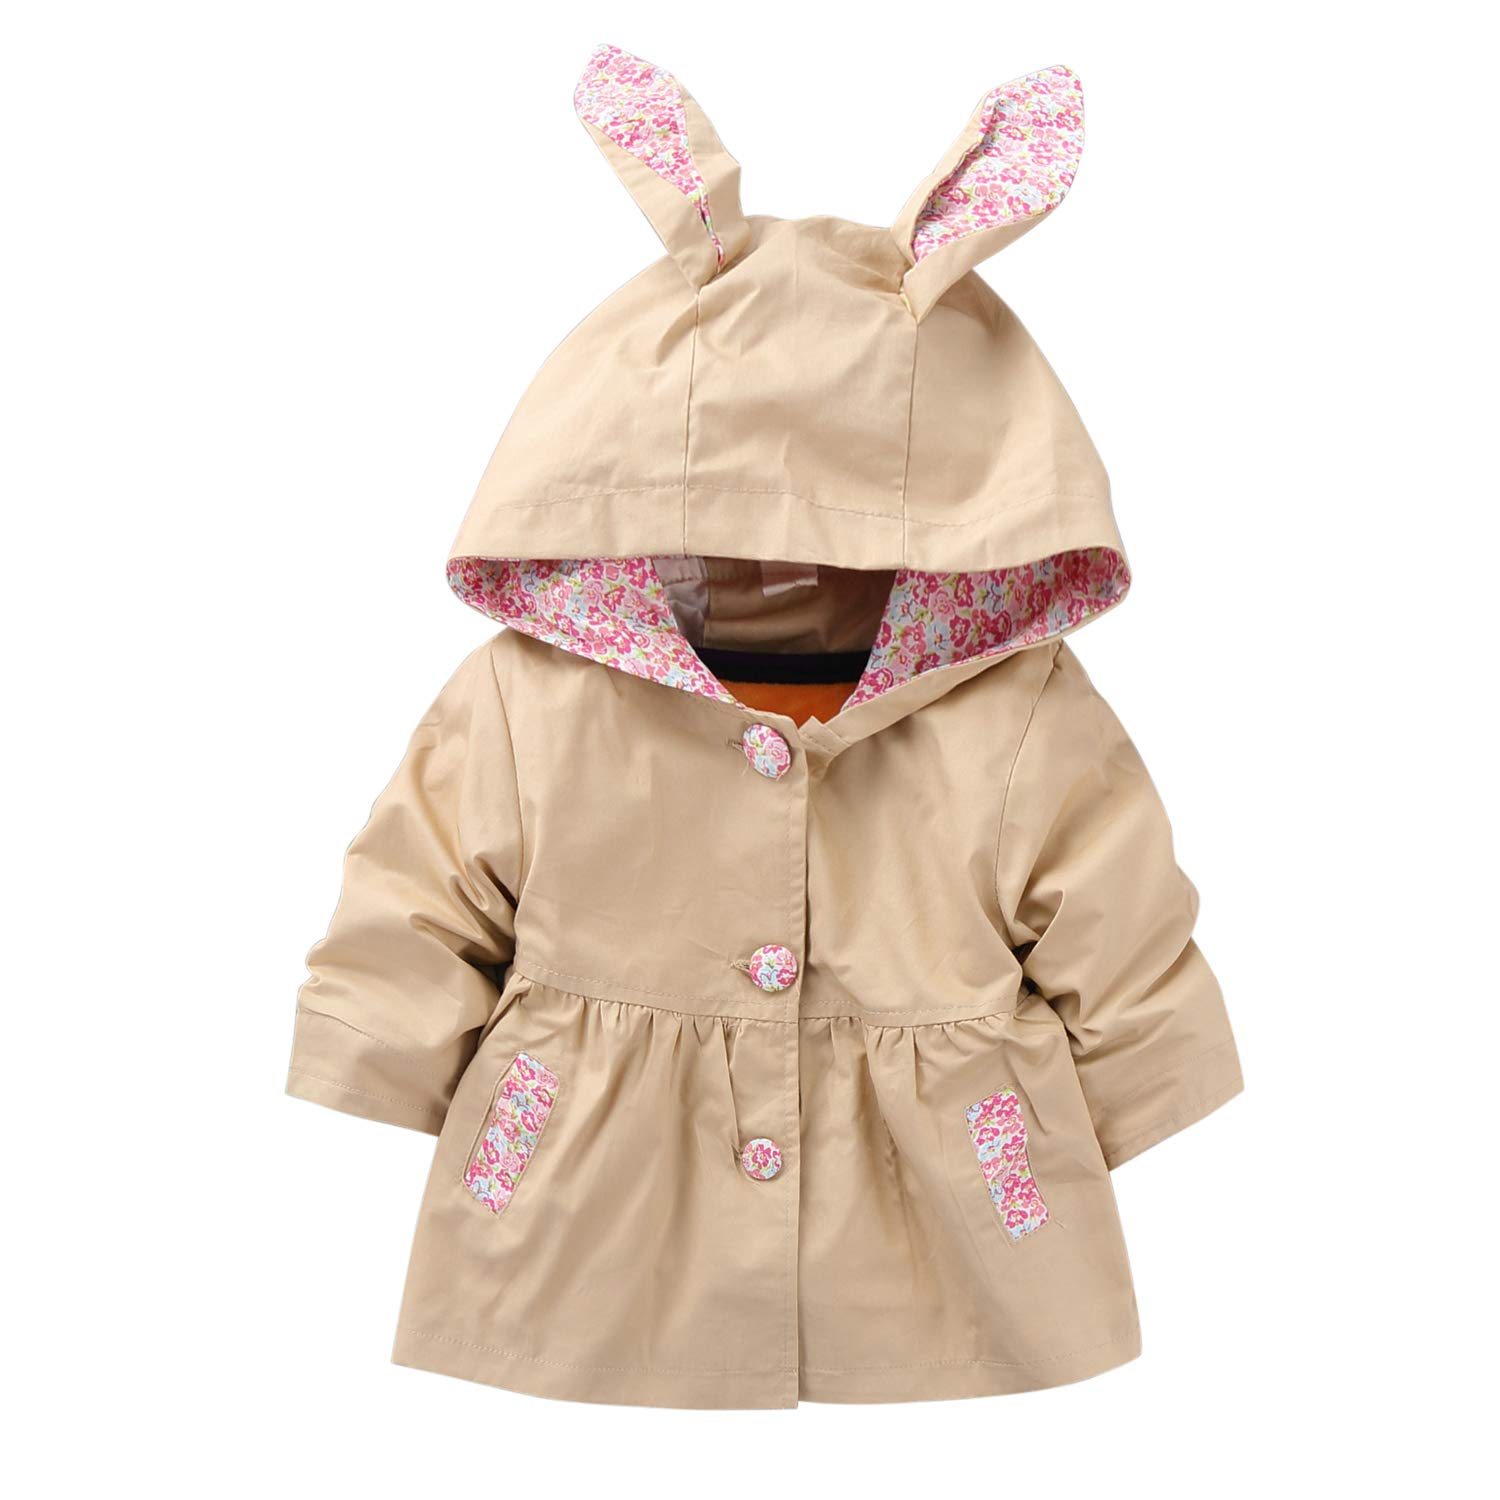 Evelin LEE Kids Girls Cute Spring Fall Outwear Jacket Hooded Windbreaker Trench Coat 05BFA0411-CA-ZL